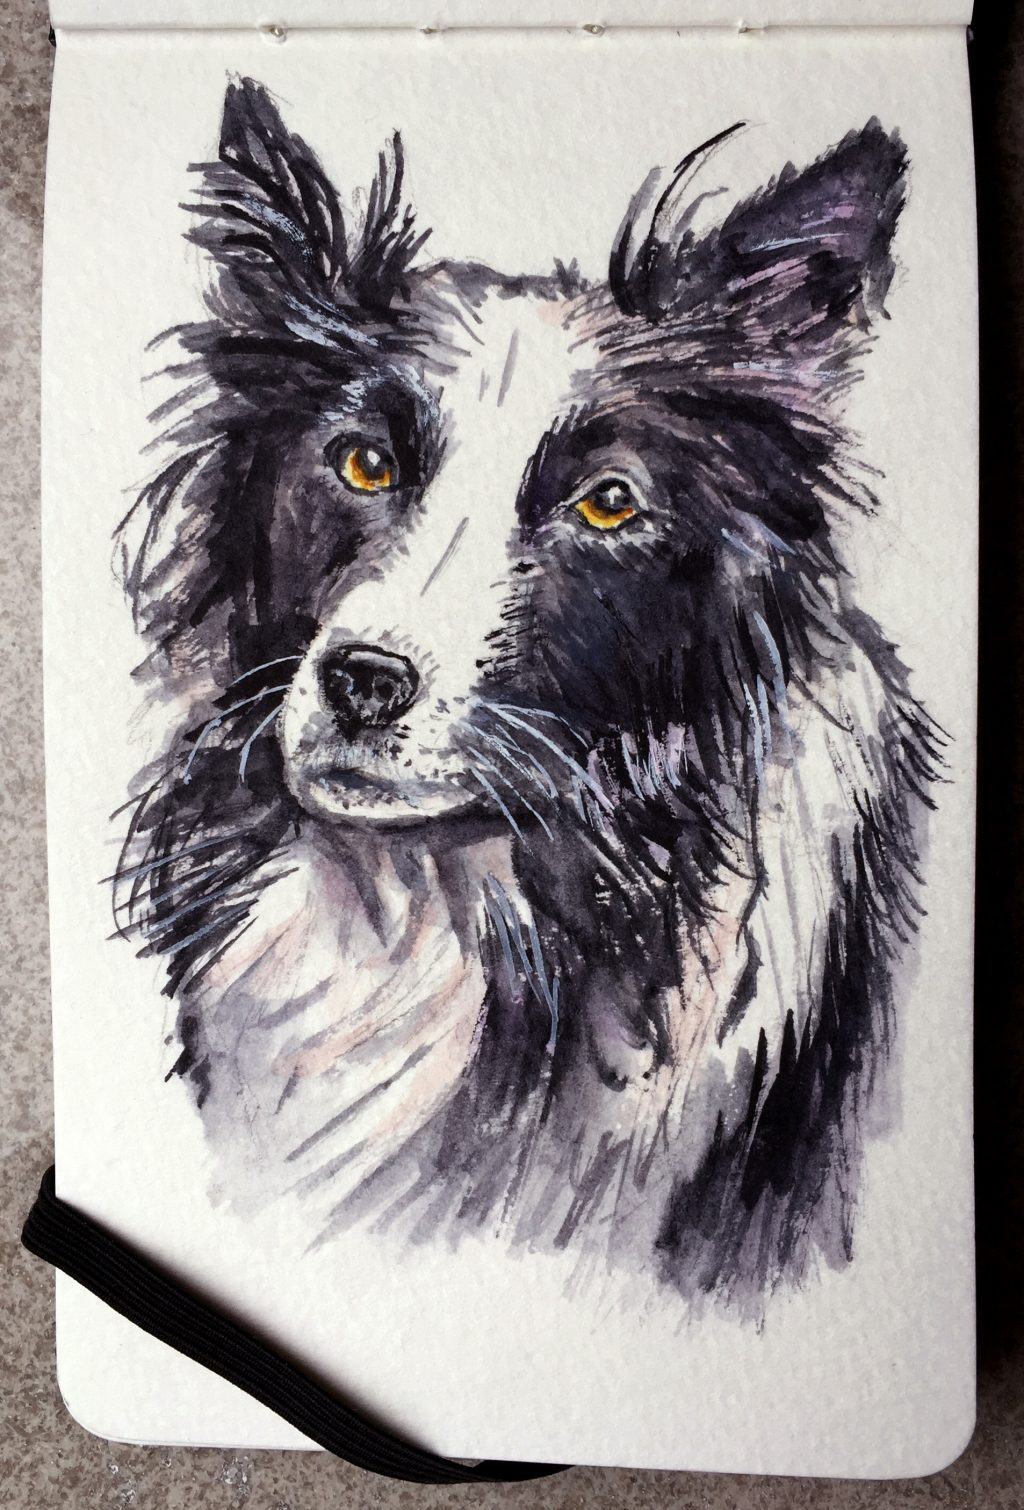 My First Dog by Charlie O'Shields